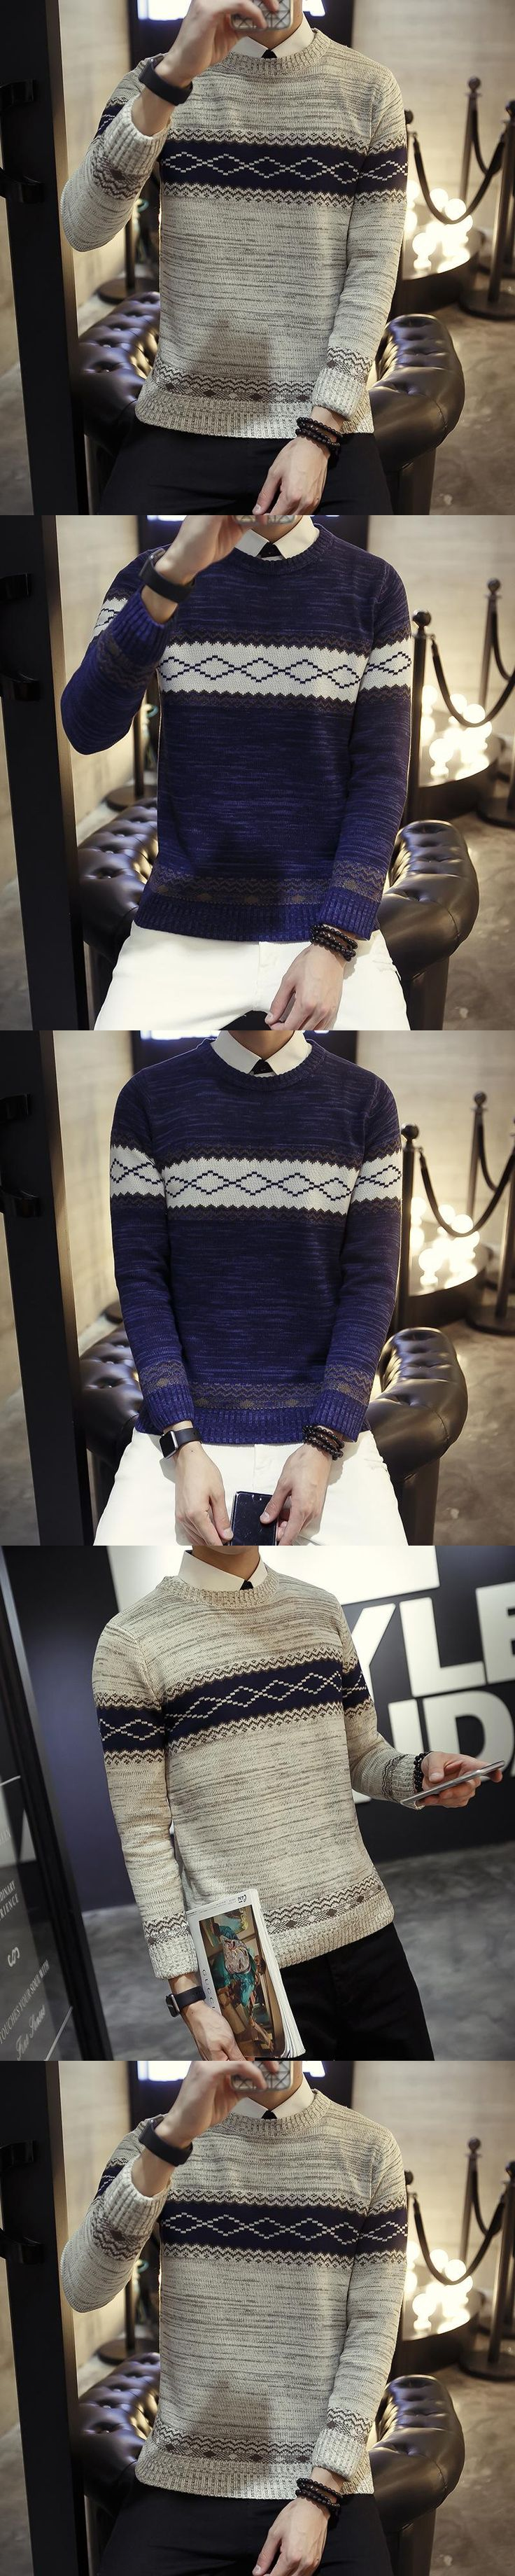 Pullover For Men Mens 2017 Pepper Wool Sweater Turtleneck Knitting Sweaters Cheap-Wool-Sweaters Man Jumpers Striped m688